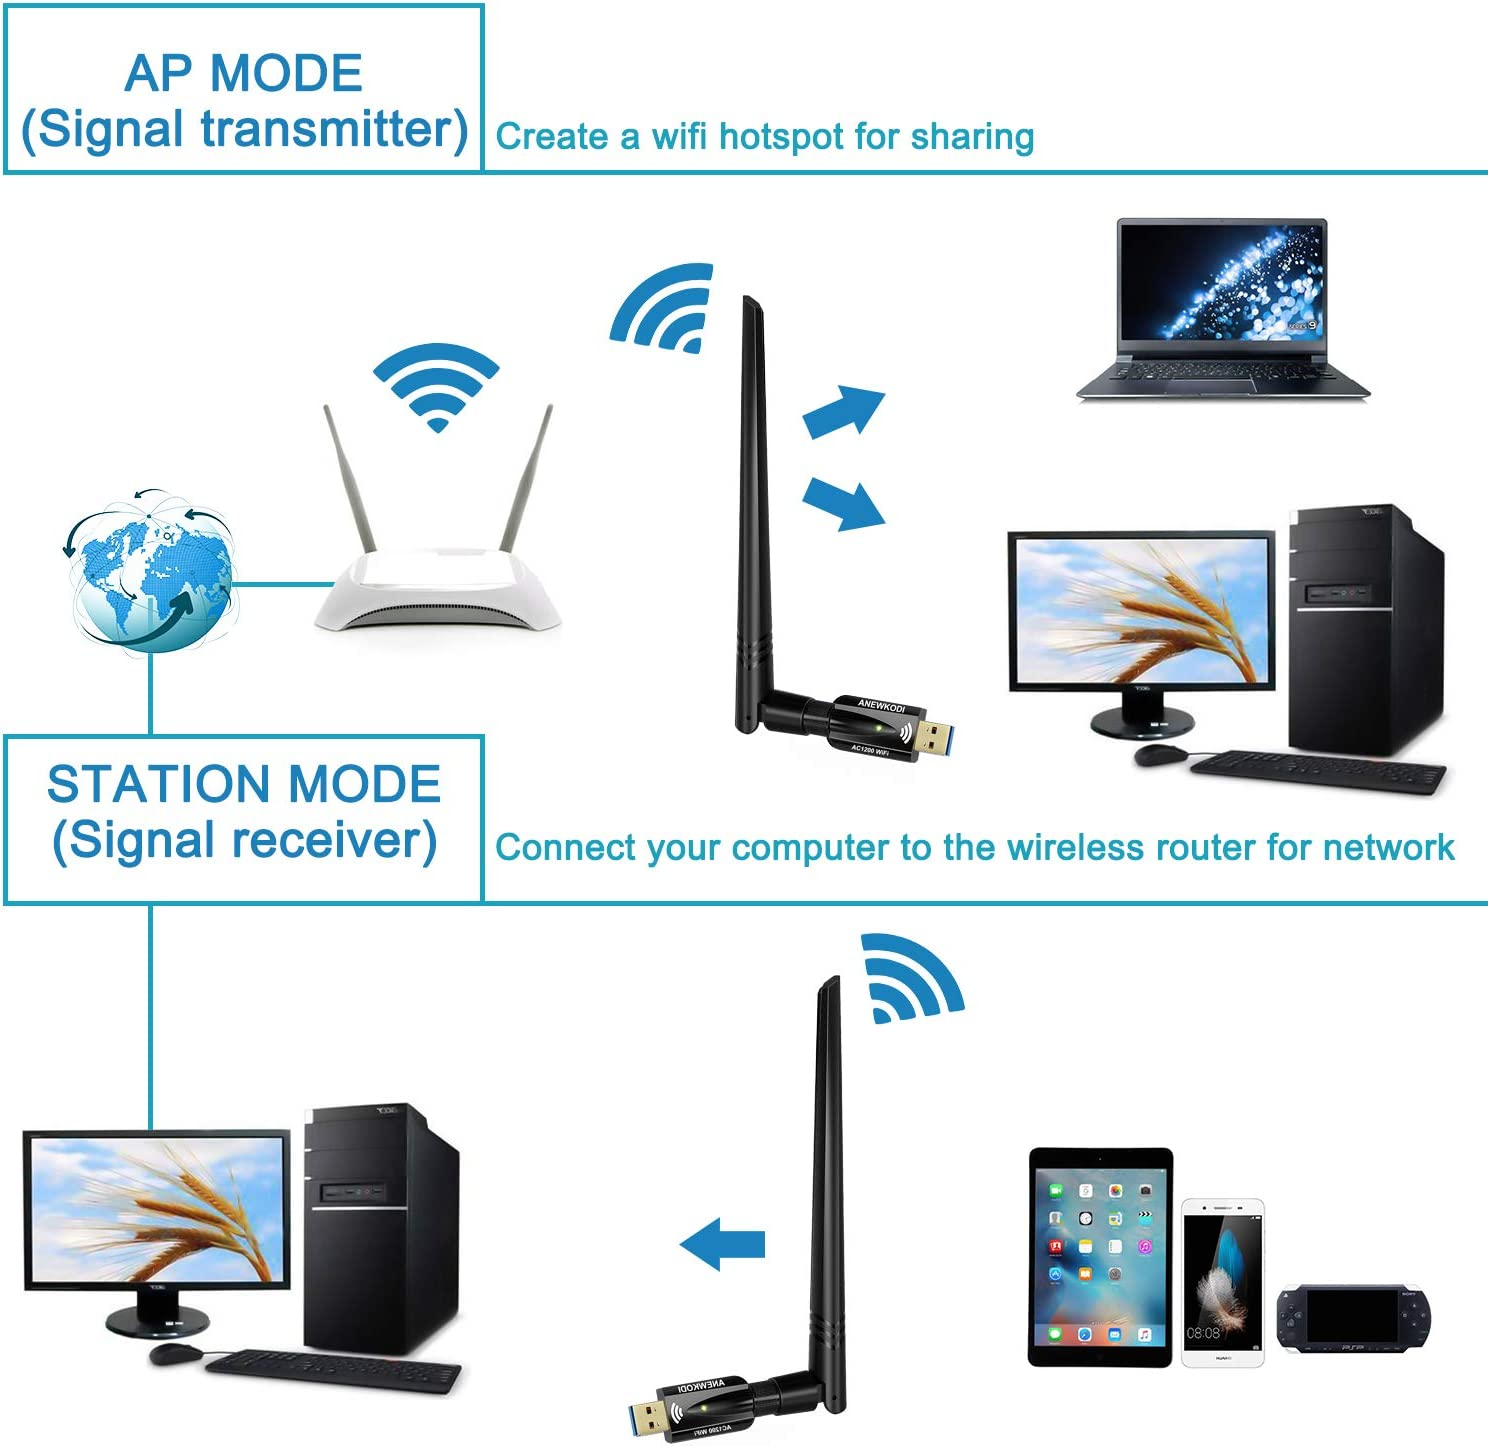 2.4GHz //300Mbps+5GHz //867Mbps ANEWKODI USB WiFi Adapter USB3.0 1200Mbps,Dual Band 802.11ac with 5dBi External Antennas for PC//Desktop//Laptop//Cell phone,Support Windows Vista//7//8//8.1//10,Mac OS